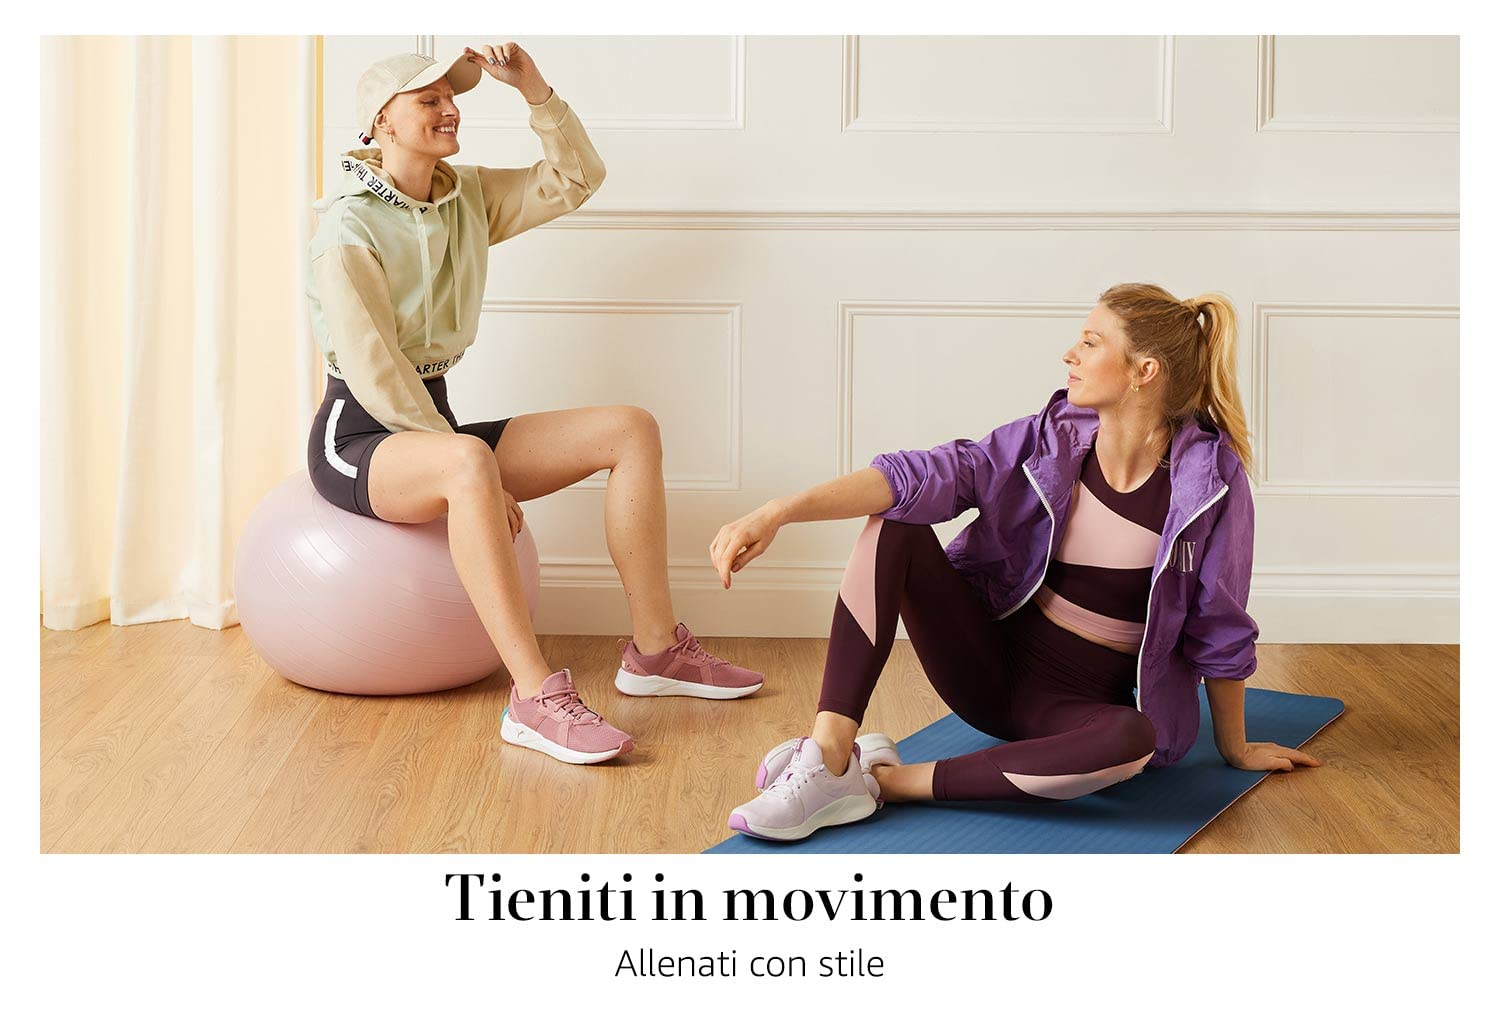 Tieniti in movimento